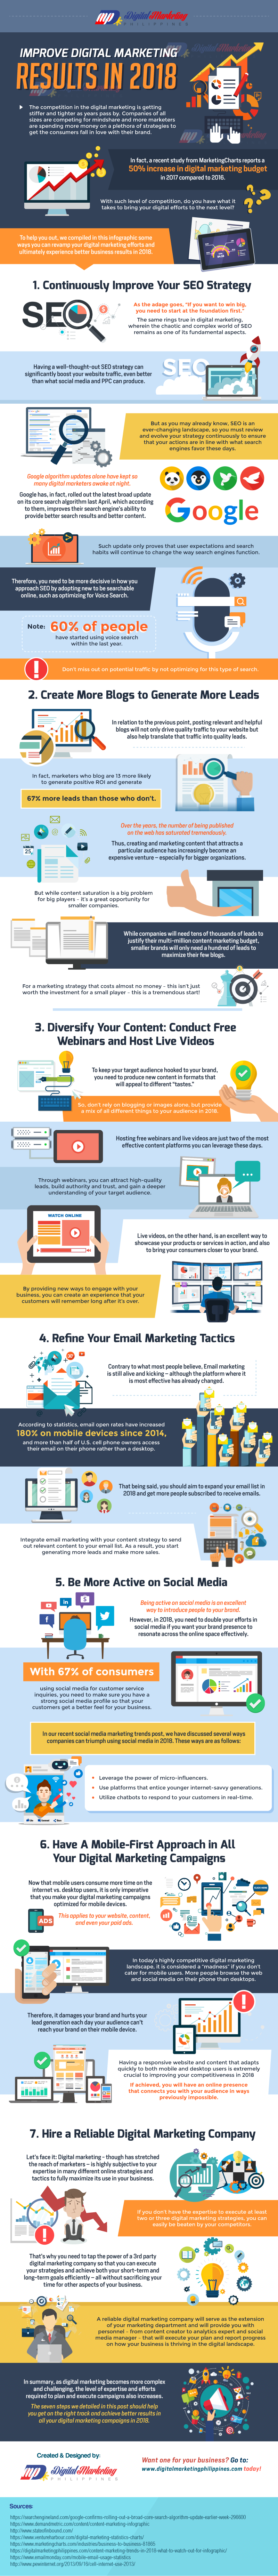 Improve Digital Marketing Results in 2018 (Infographic)